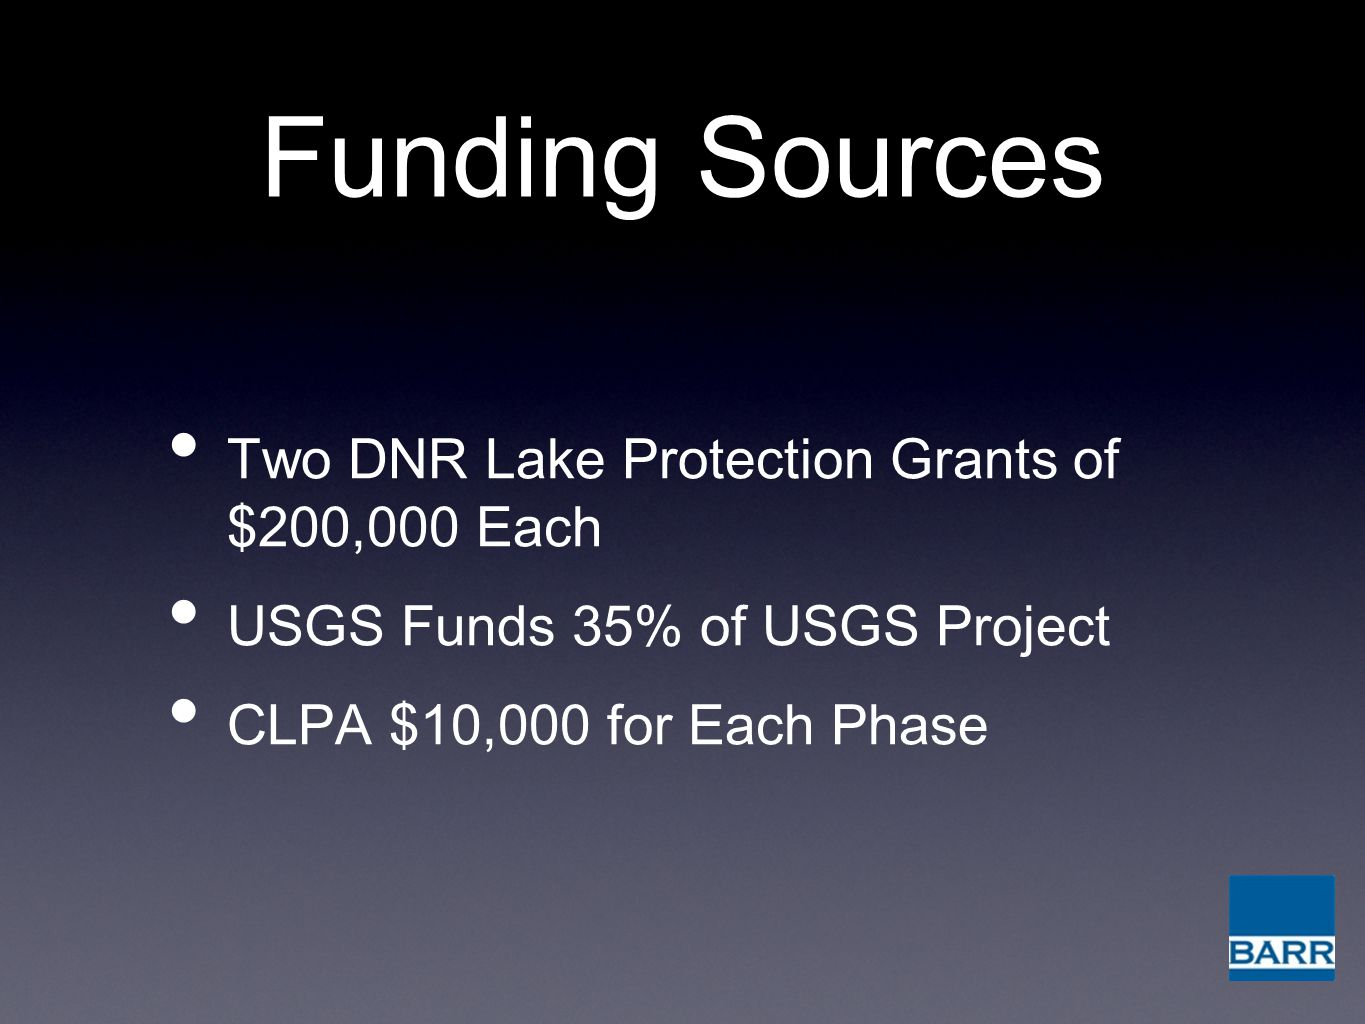 Funding Sources Two DNR Lake Protection Grants of $200,000 Each USGS Funds 35% of USGS Project CLPA $10,000 for Each Phase